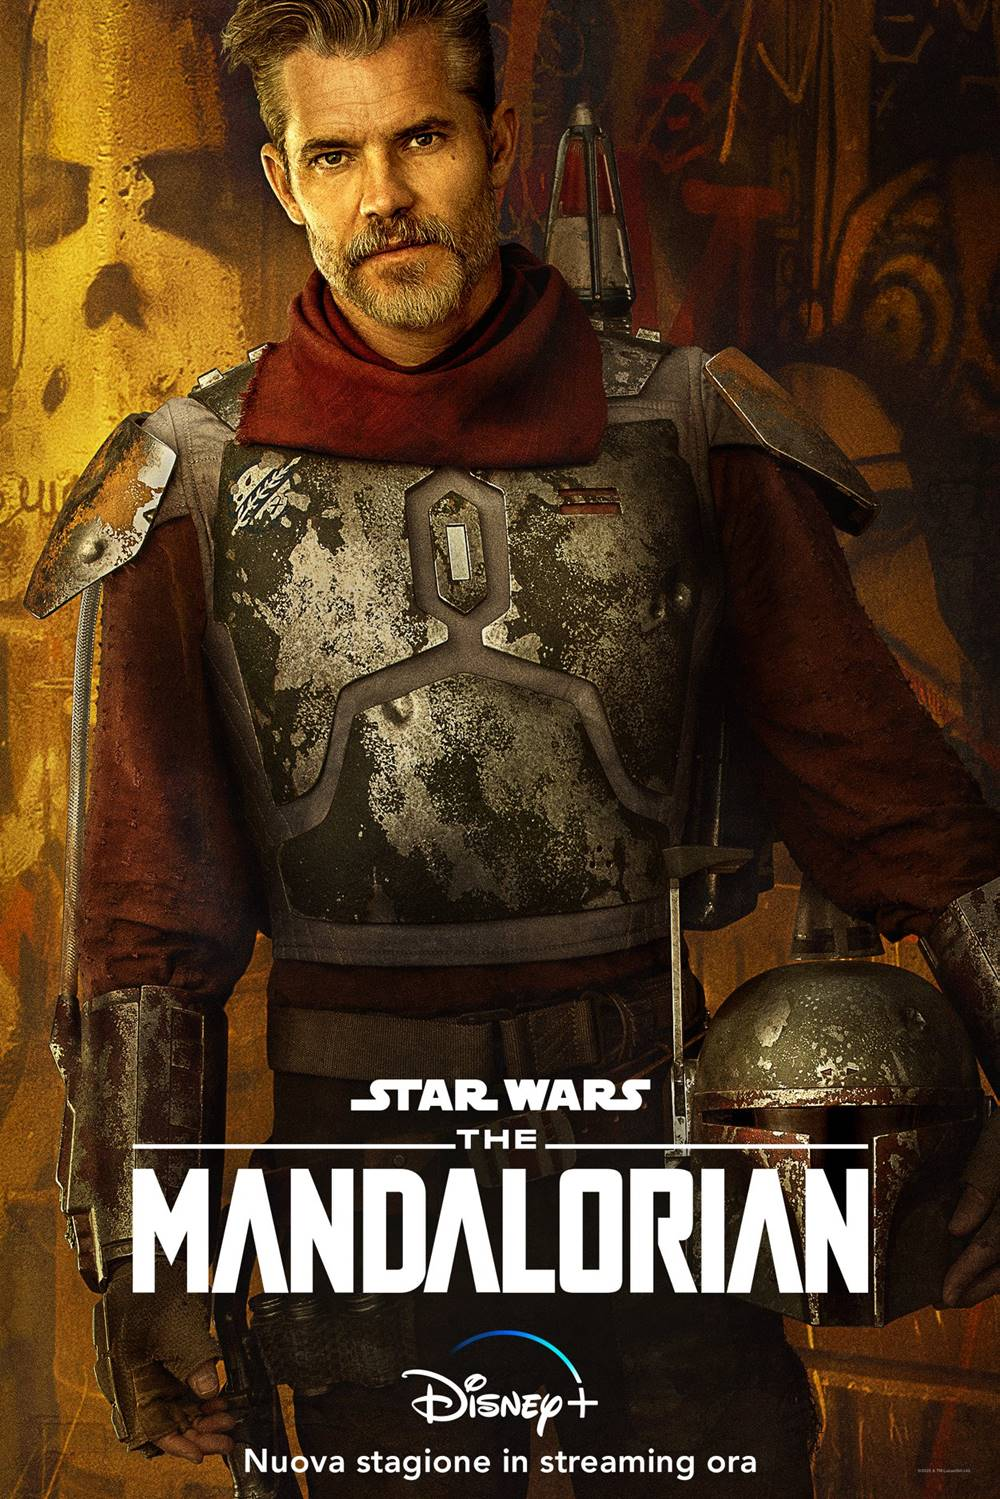 The Mandalorian 2 personaggi - Cobb Vanth